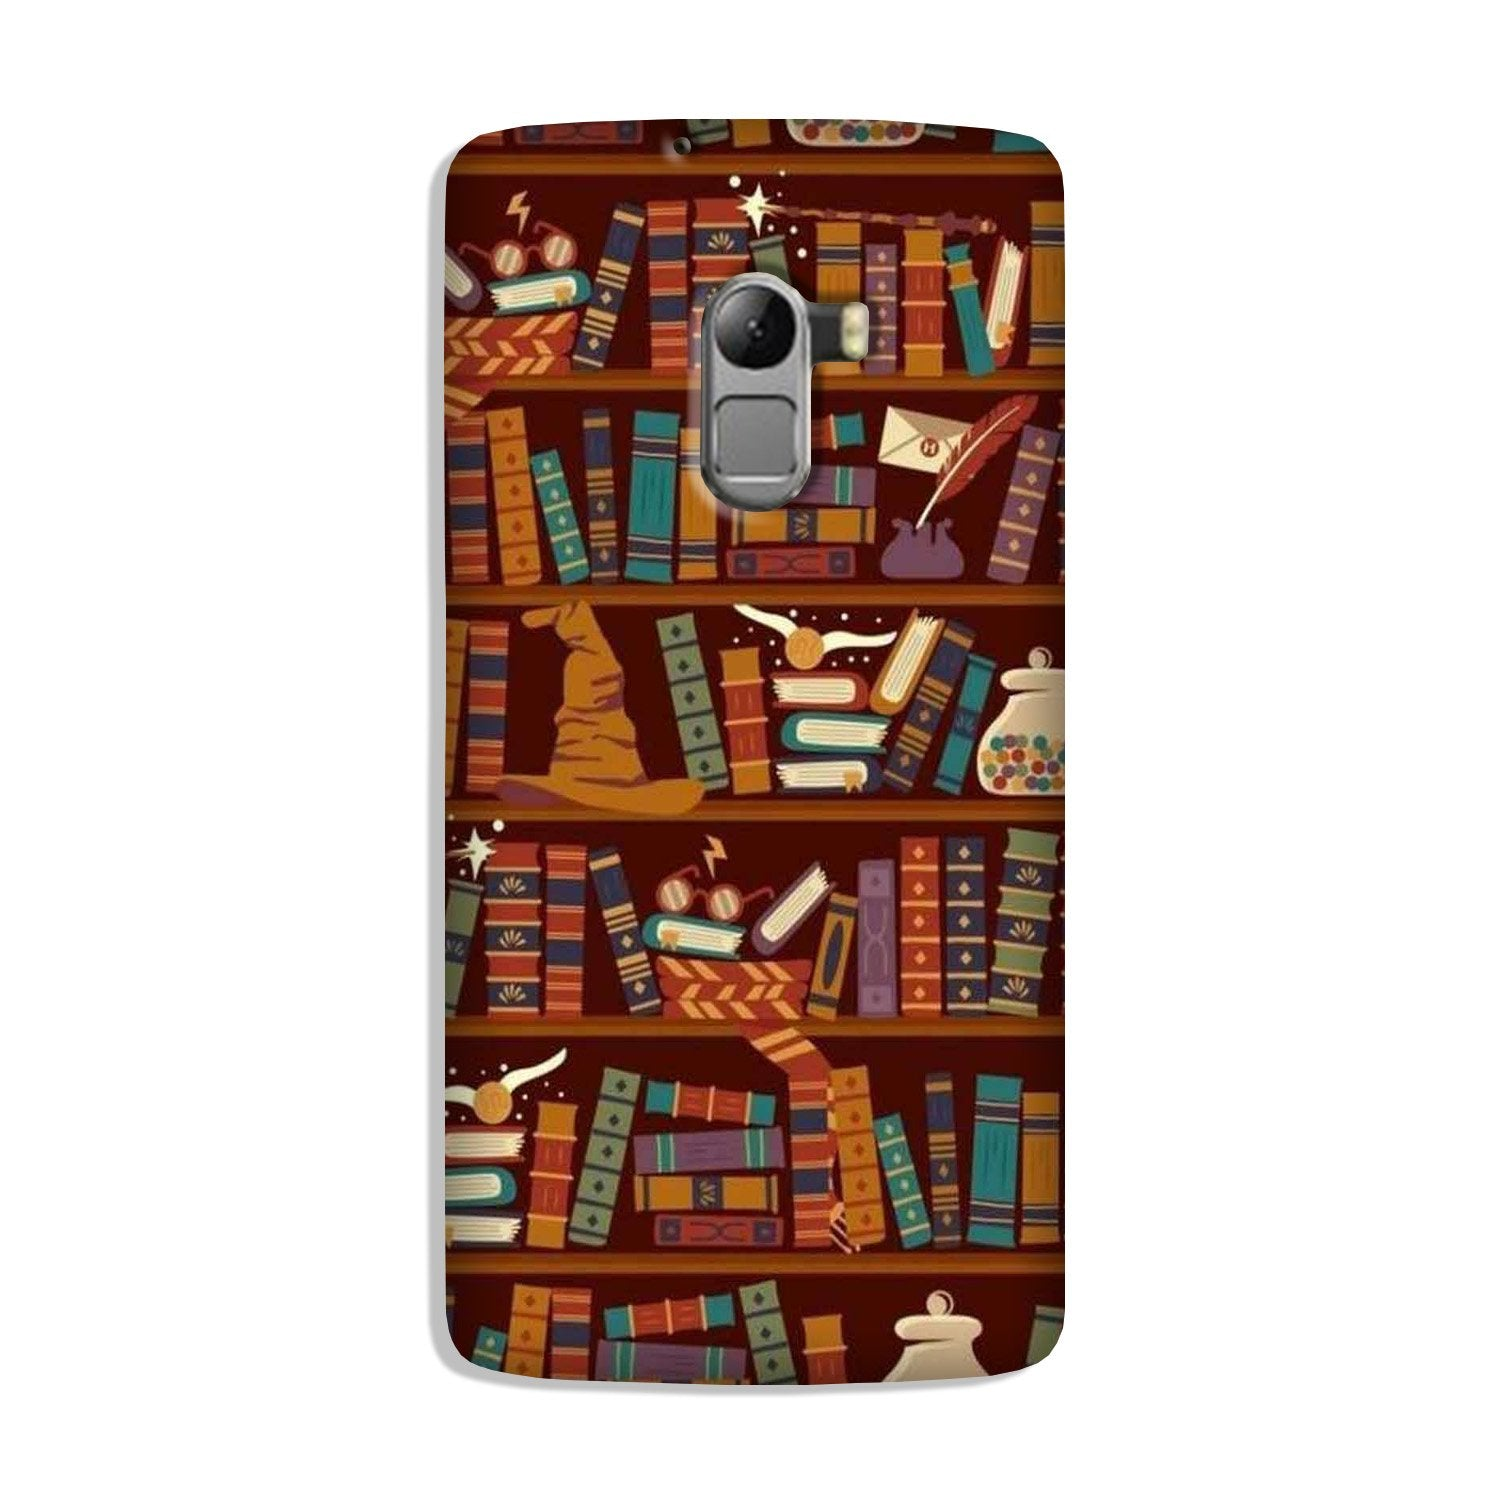 Book Shelf Mobile Back Case for Lenovo K4 Note (Design - 390)